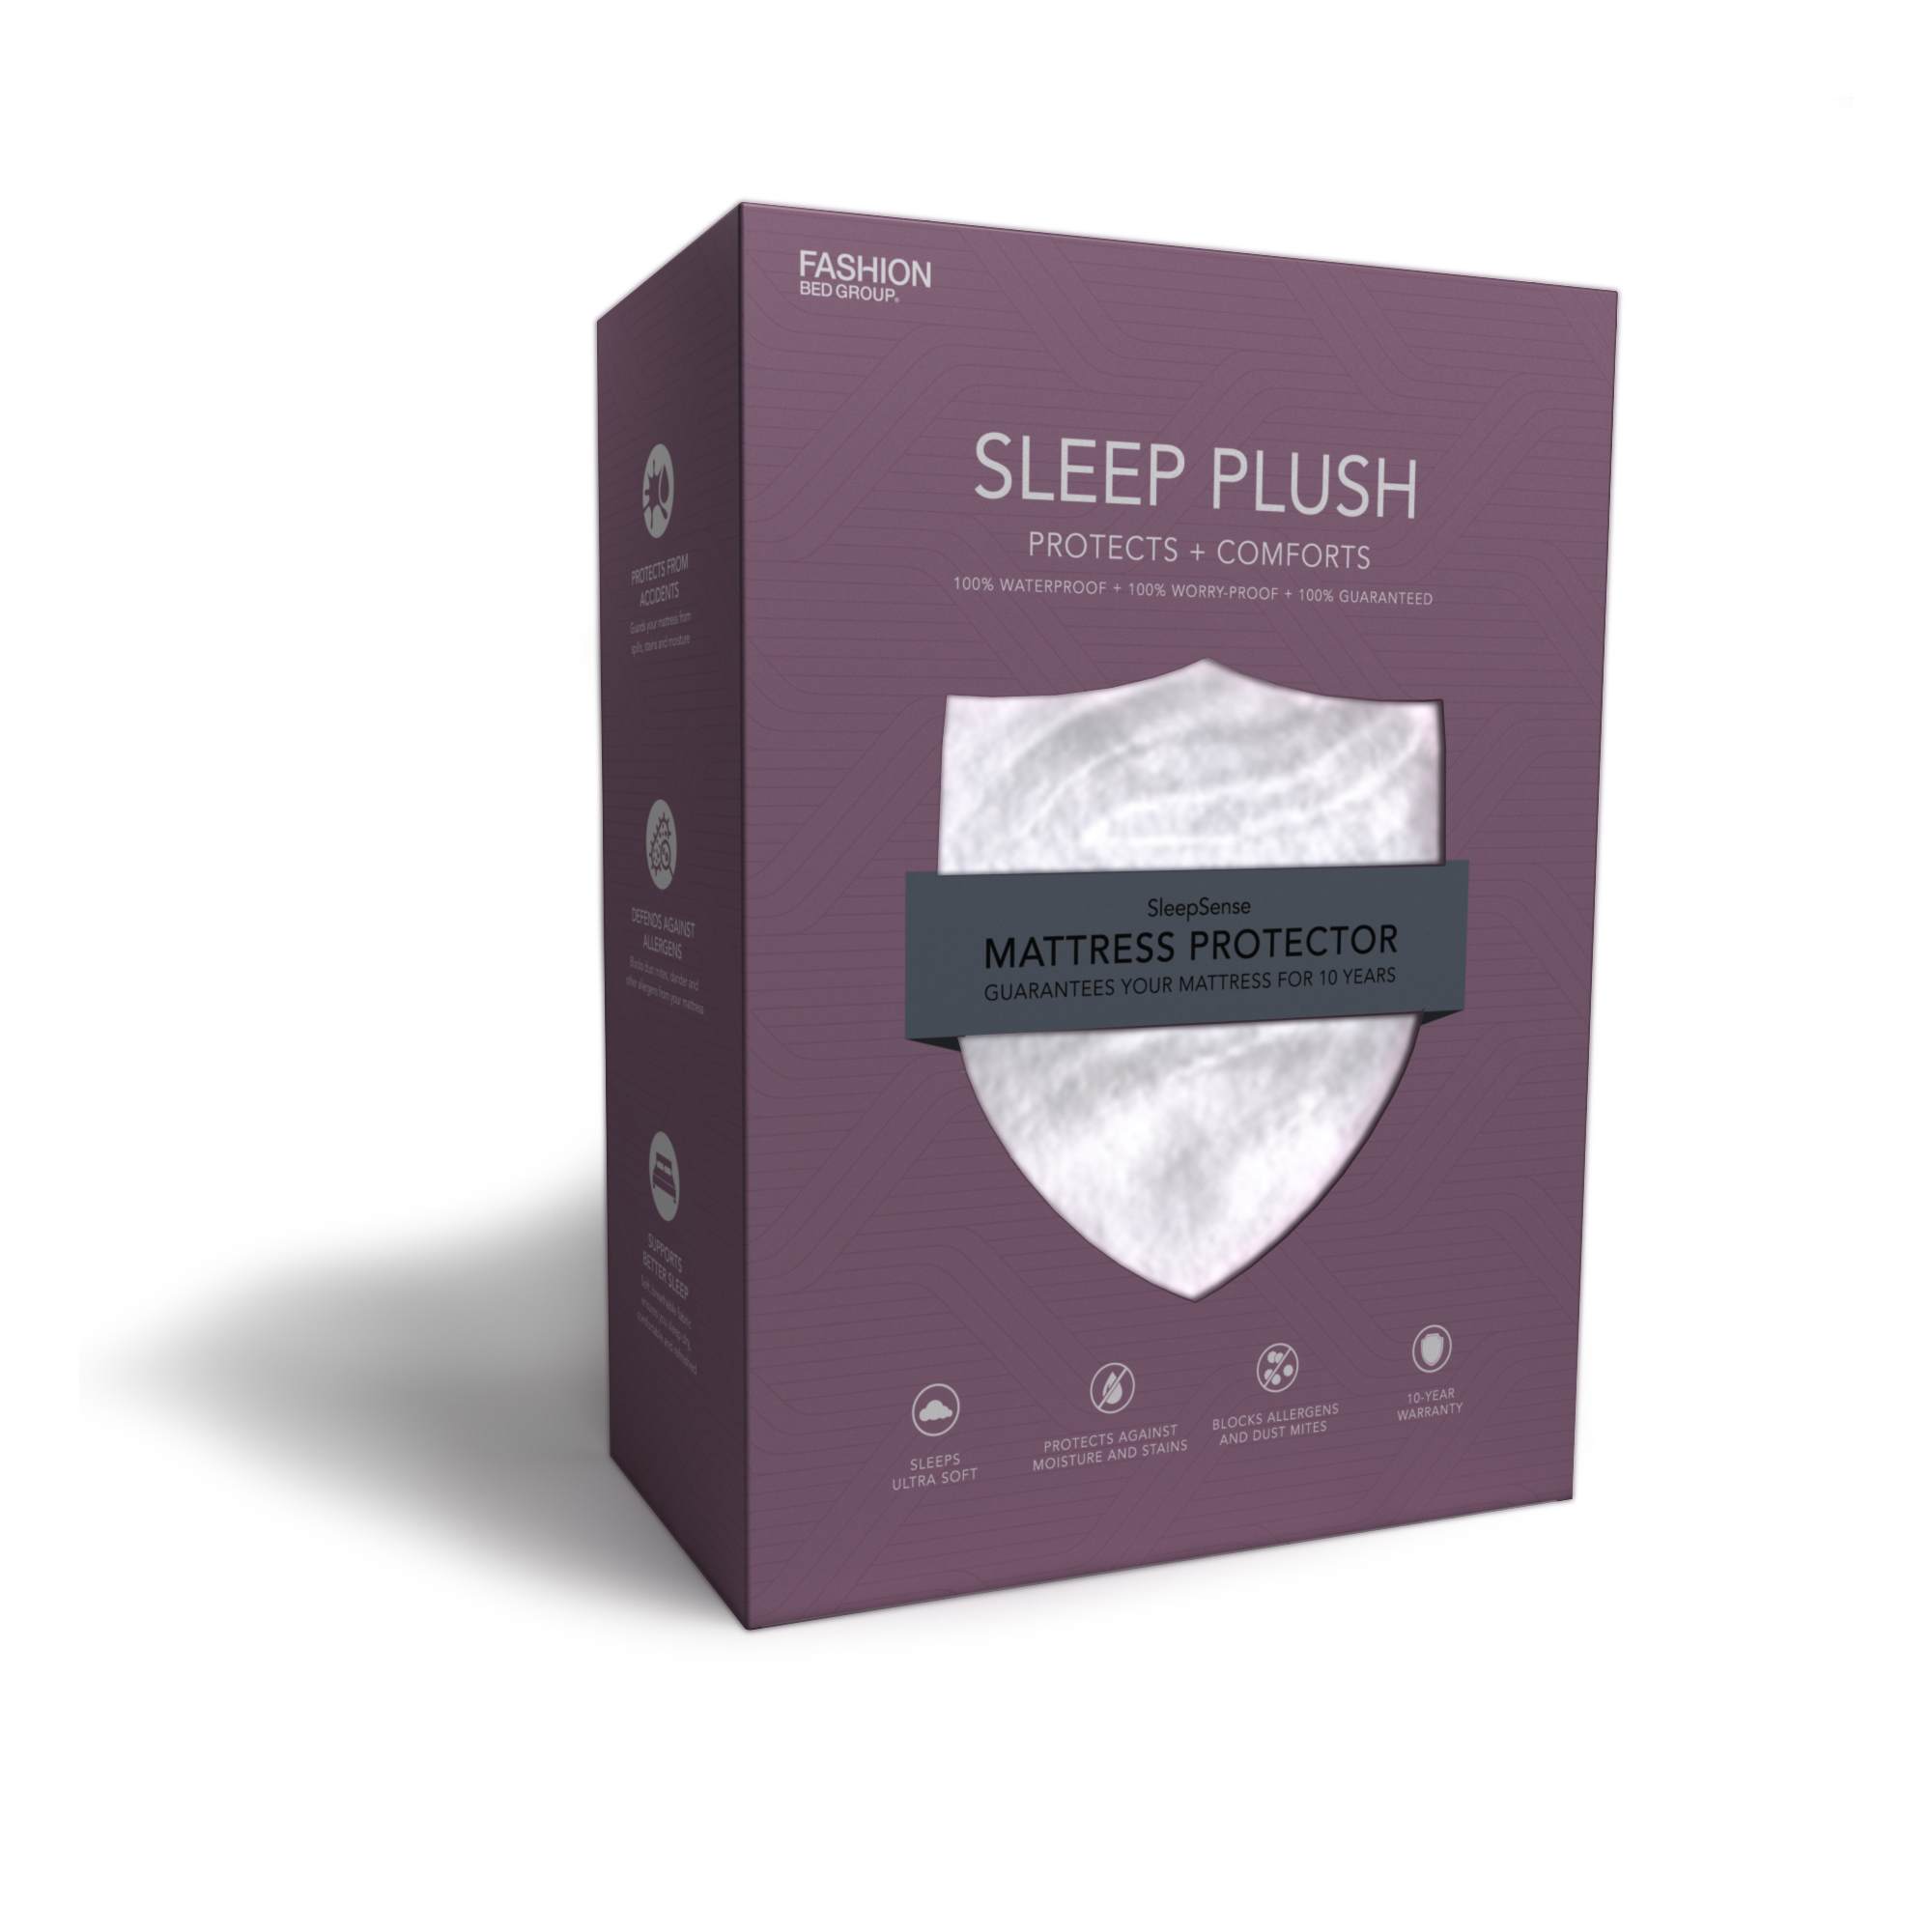 Sleep Plush Mattress Protector Bed SHeet with Ultra-Soft and Waterproof Fabric, Full by Fashion Bed Group